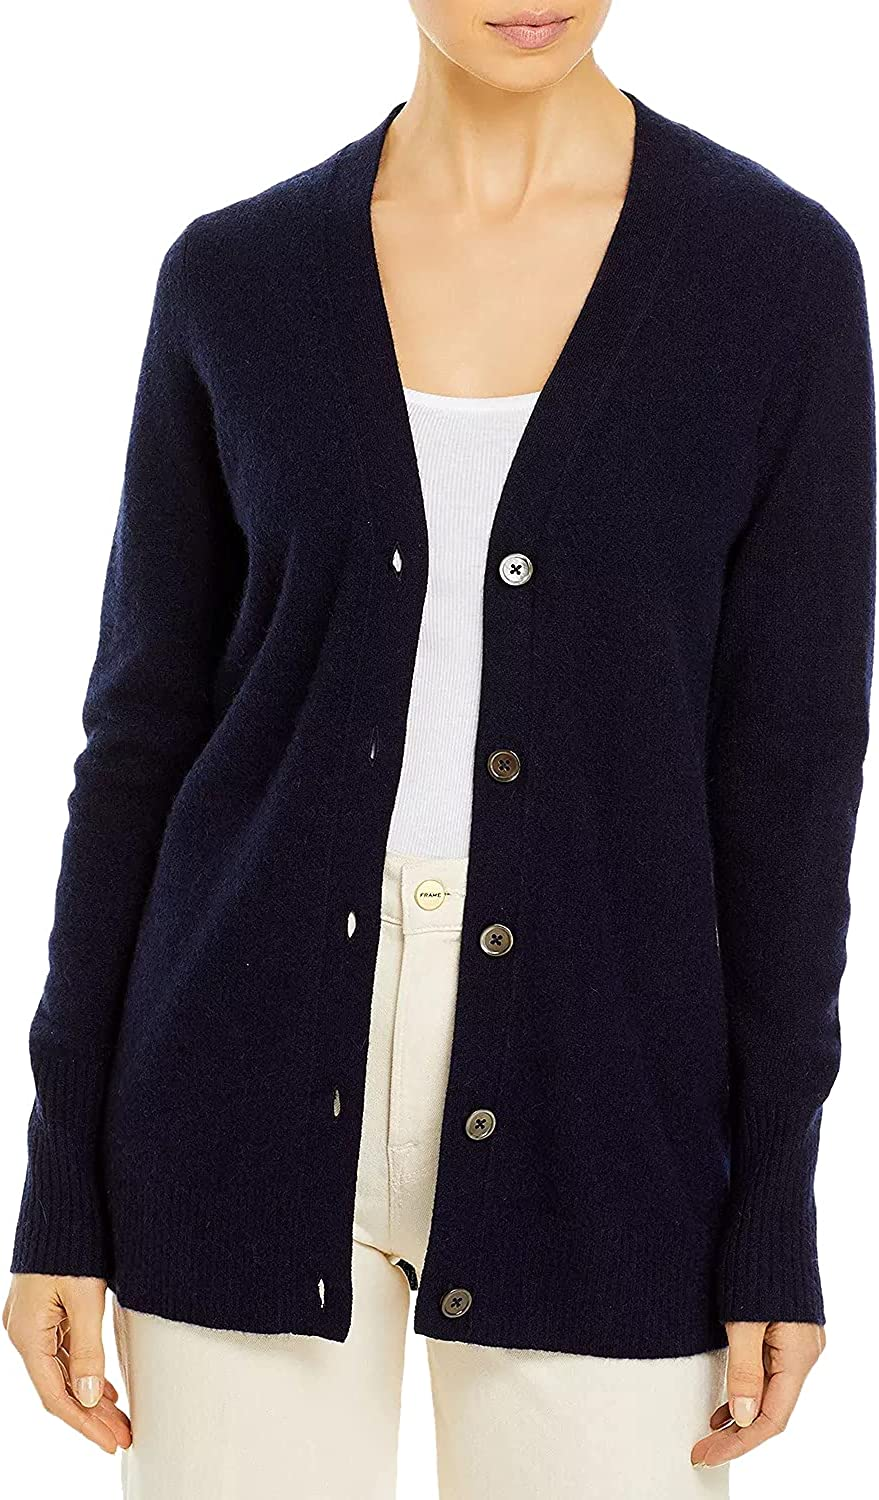 Women's Casual Knit Cardigan Button Down V-Neck Everyday Sweater Comfy Long Sleeve Coat Classic